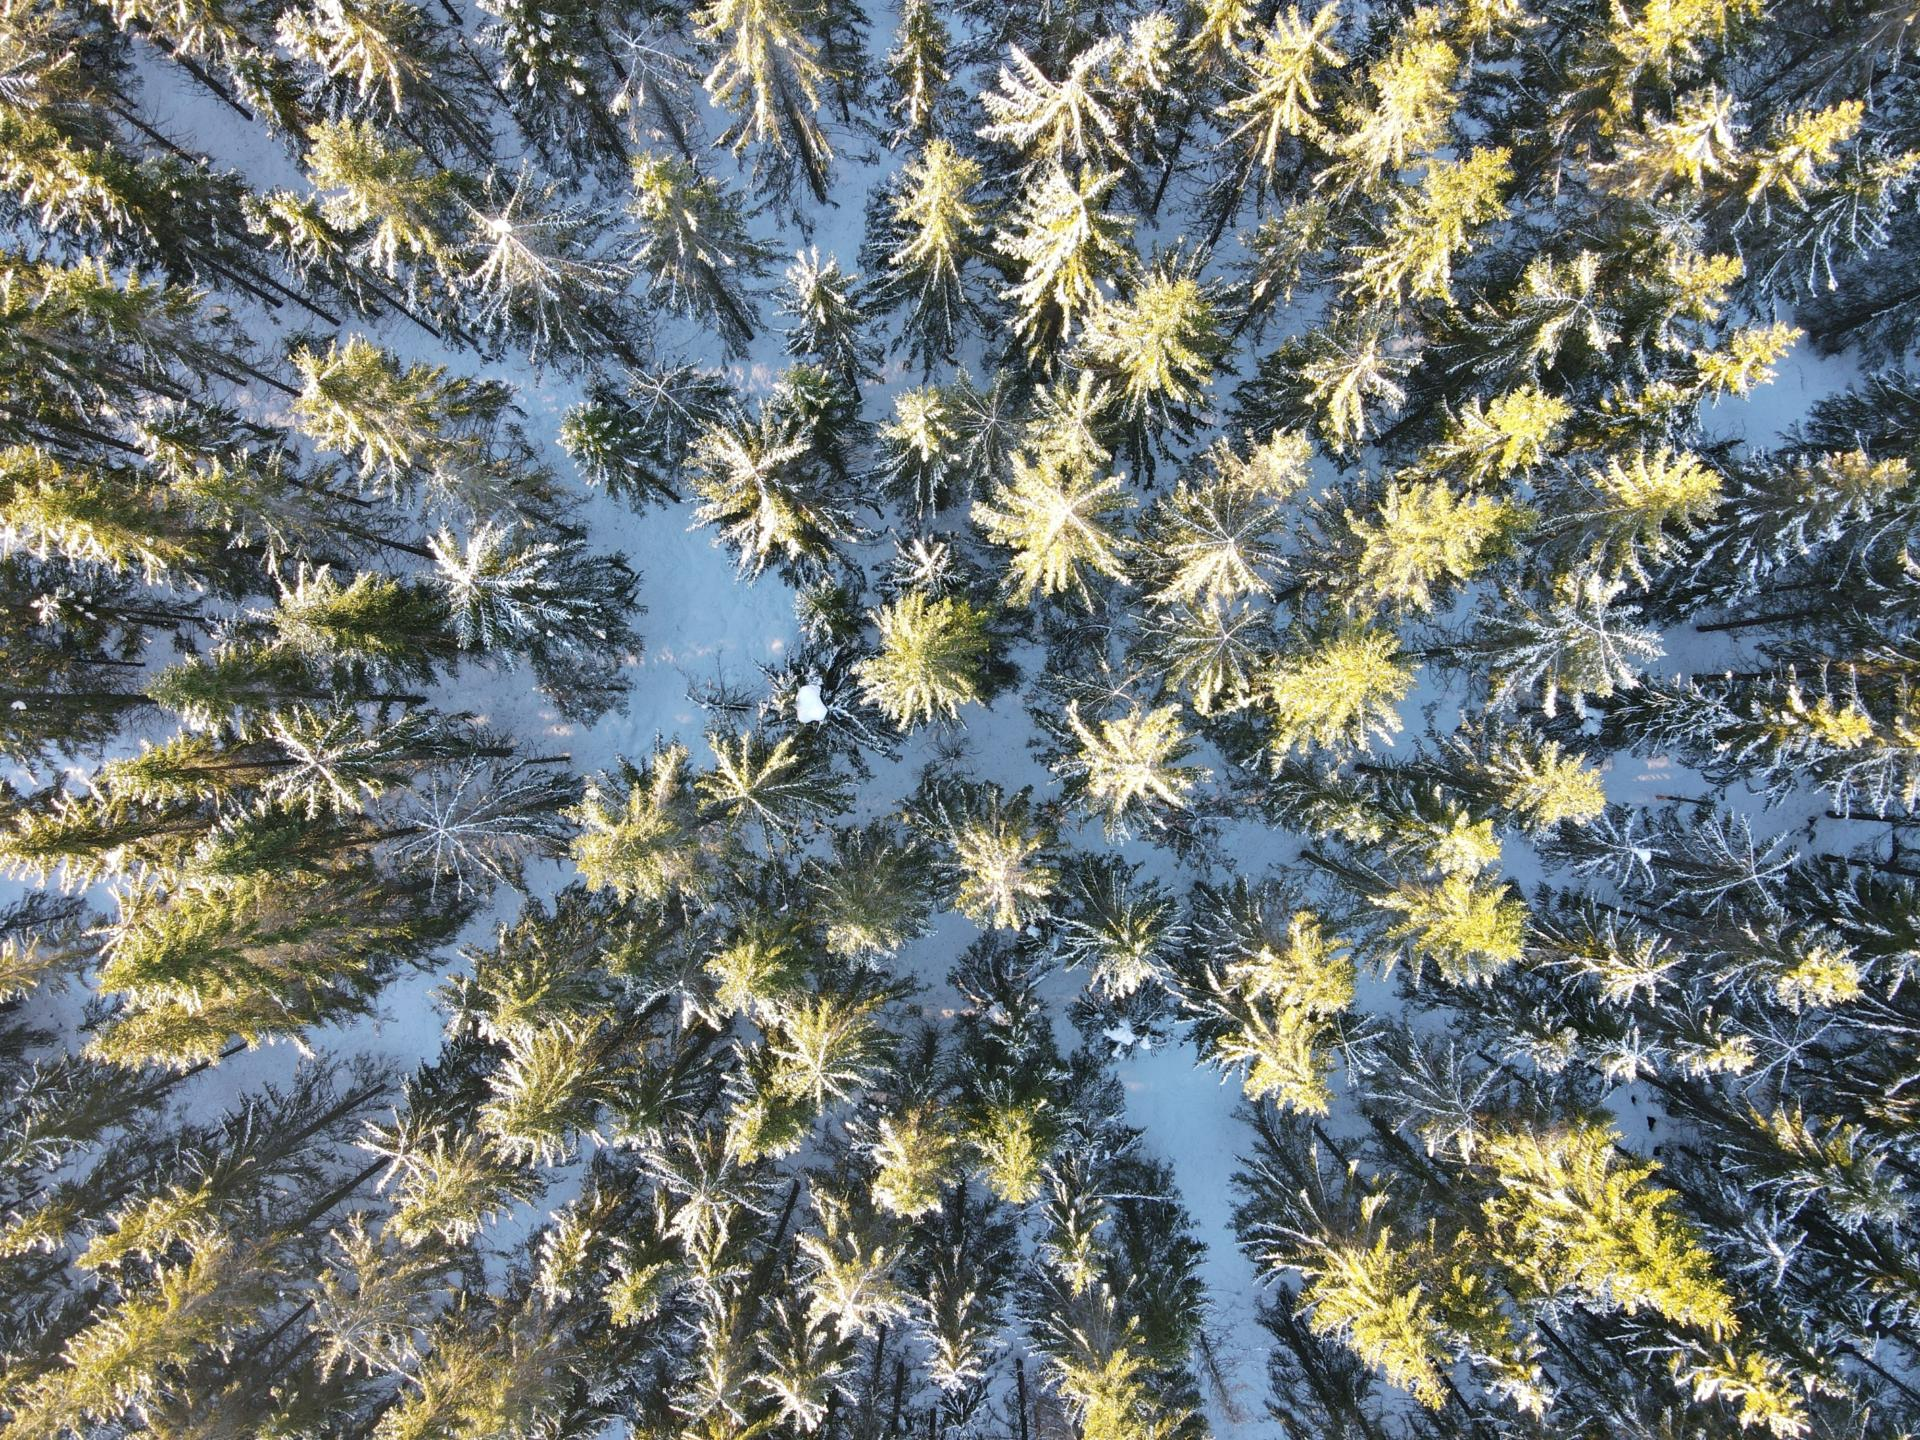 MARCSMAN: Simulating the risk of forest damage caused by climate change